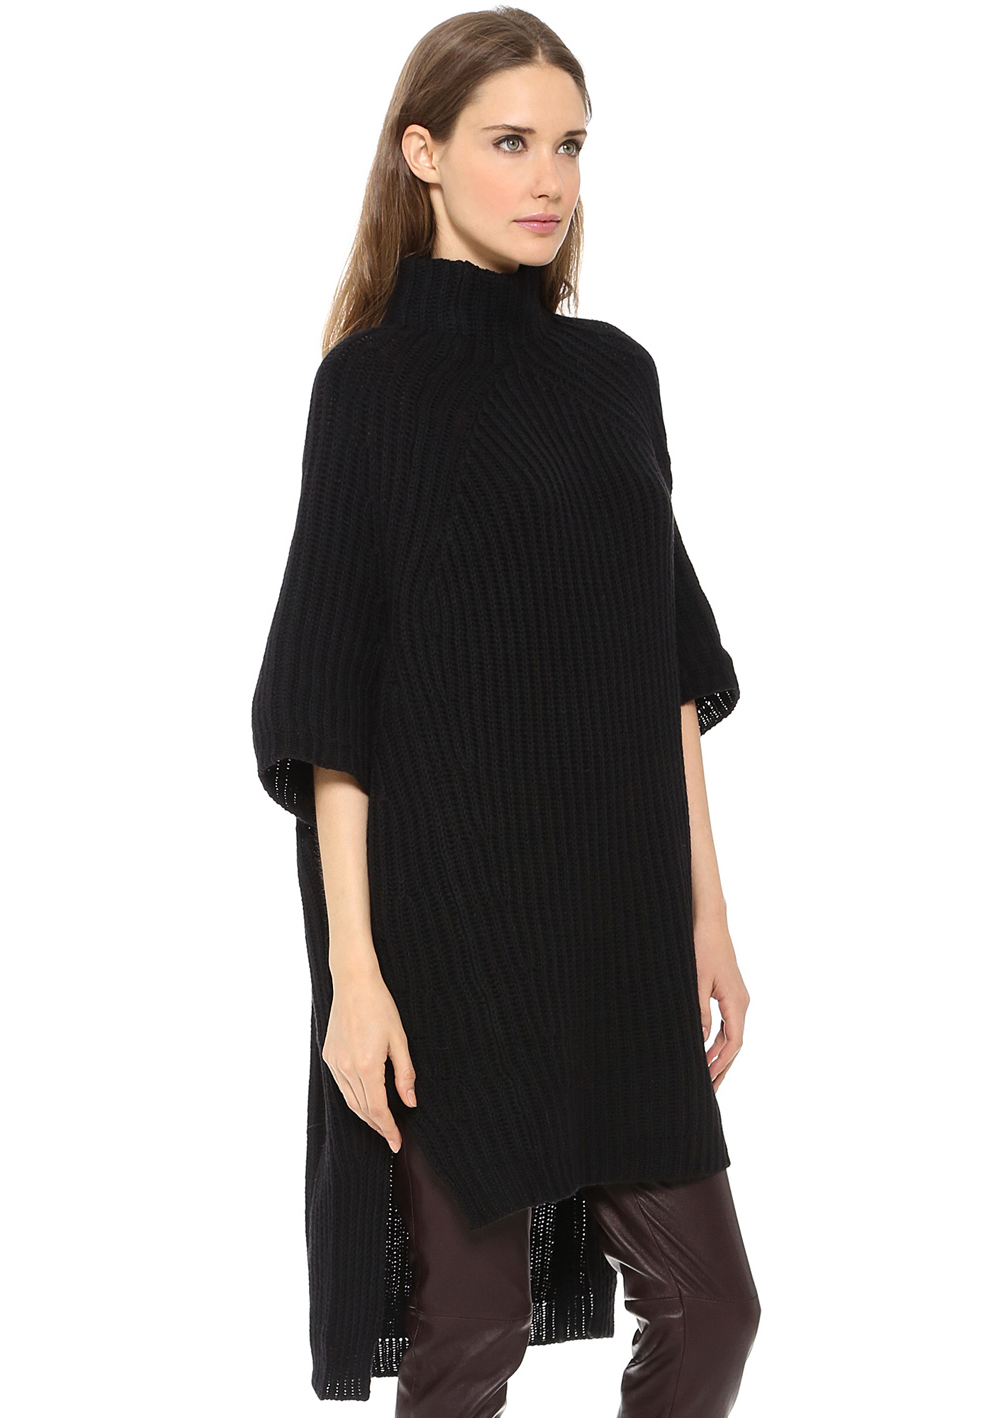 Black half sleeve oversized high low sweater